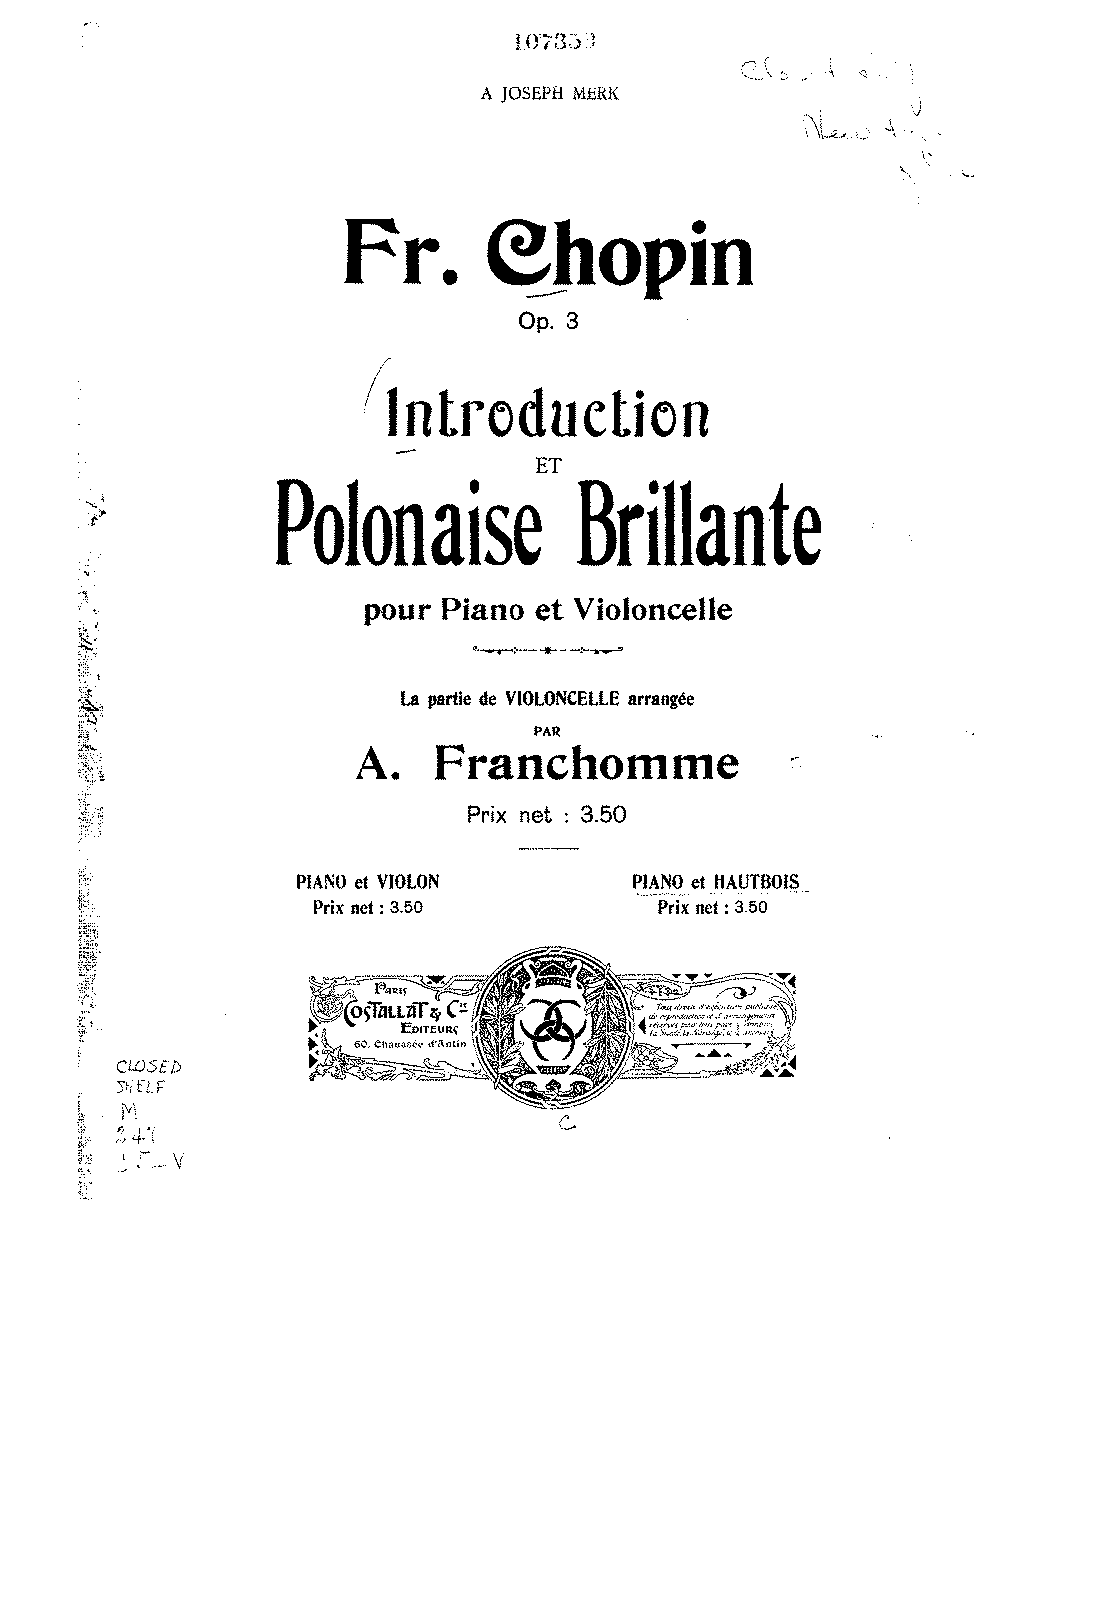 PMLP05649-Chopin - Introduction and Polonaise Brillante for Cello and Piano Op3 score.pdf